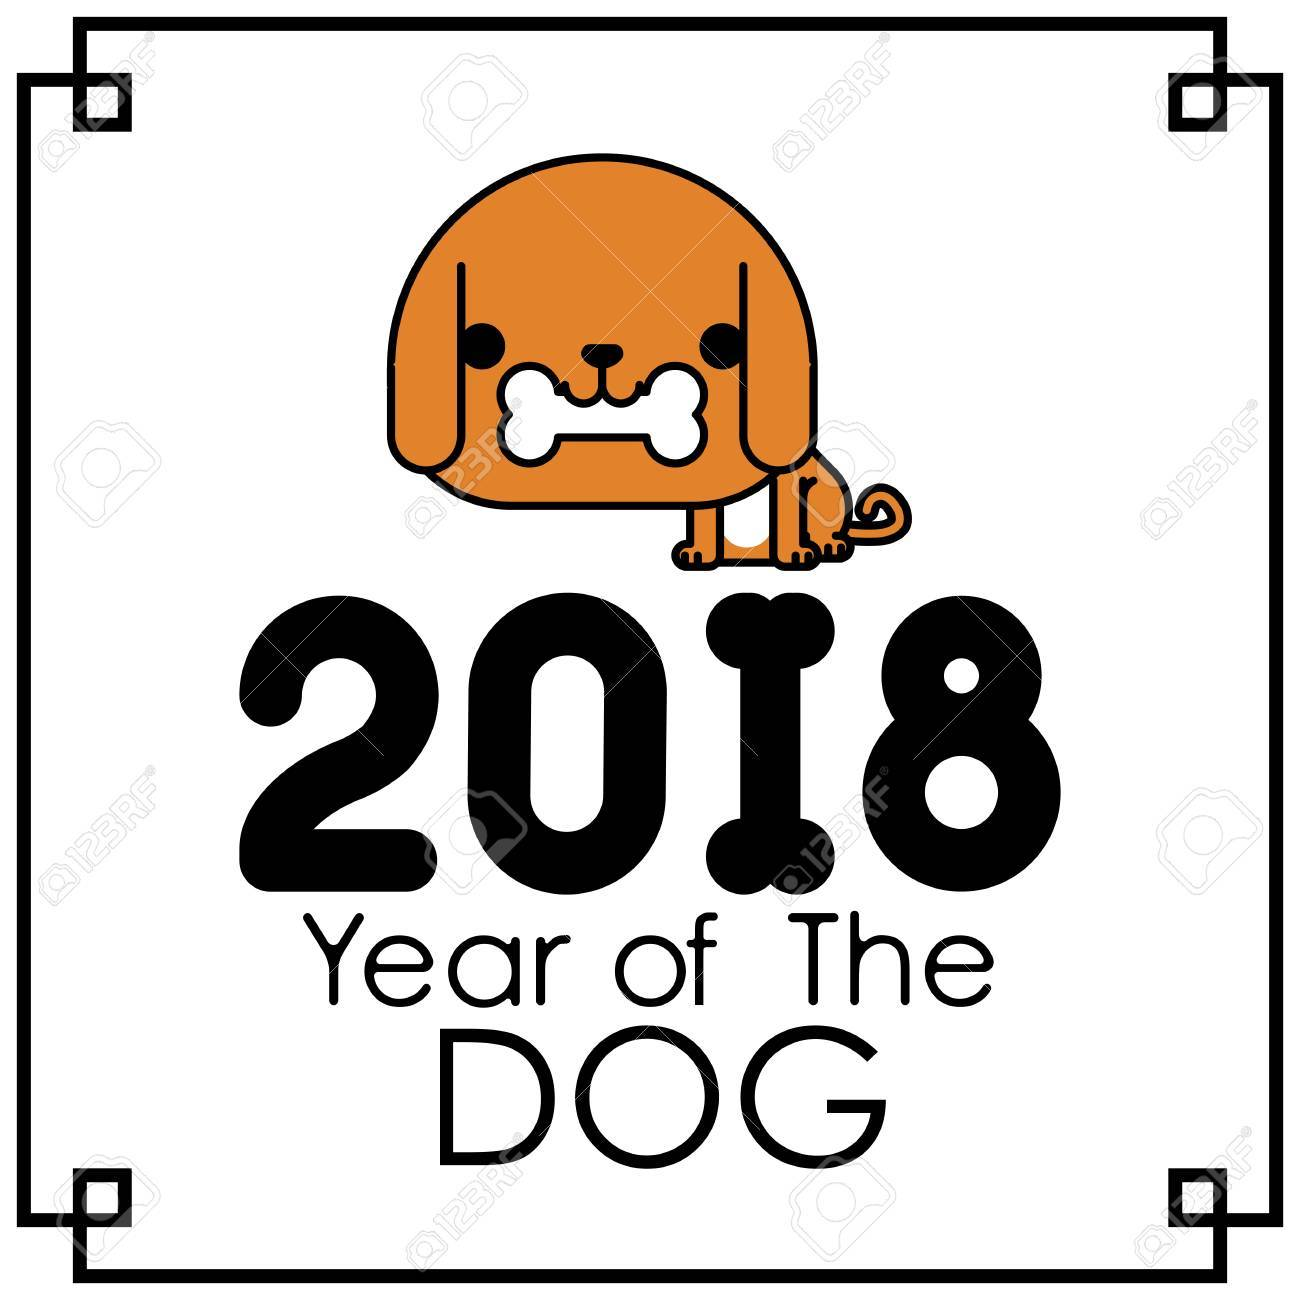 Free clipart for the new year blessing 2018 clip art download New Year Blessings Clipart & Free Clip Art Images #11379 ... clip art download